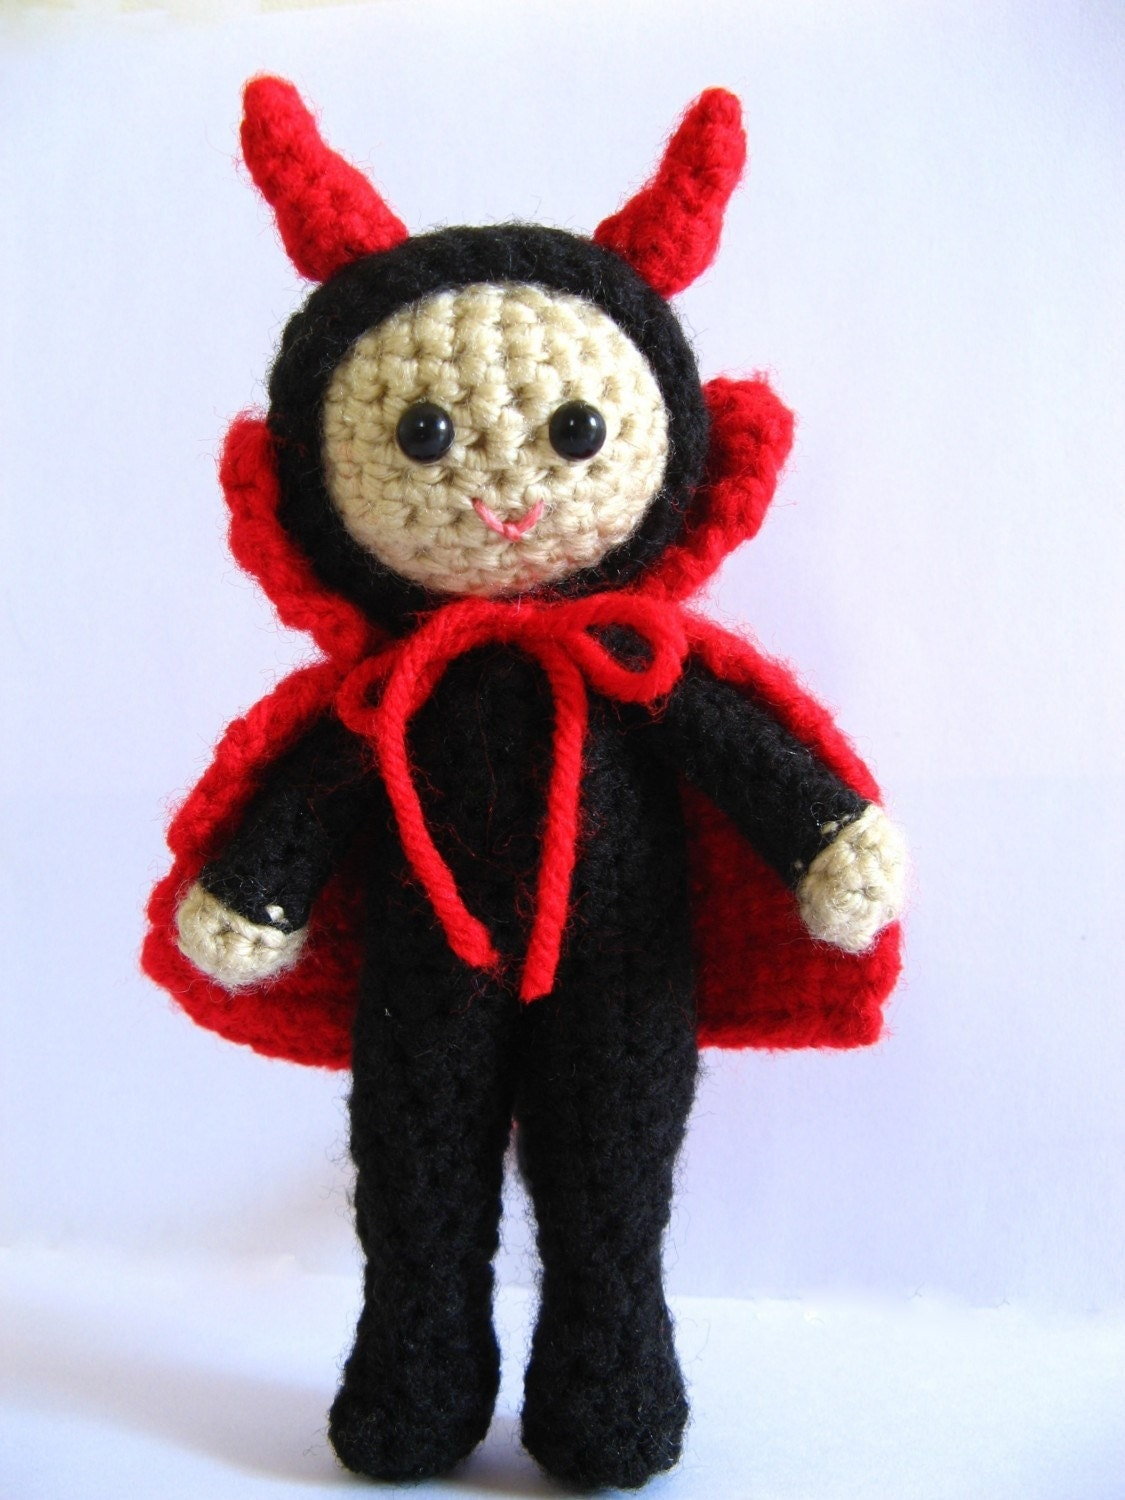 Halloween Amigurumi Crochet : Amigurumi Devil Crochet Pattern PDF halloween decor by ...